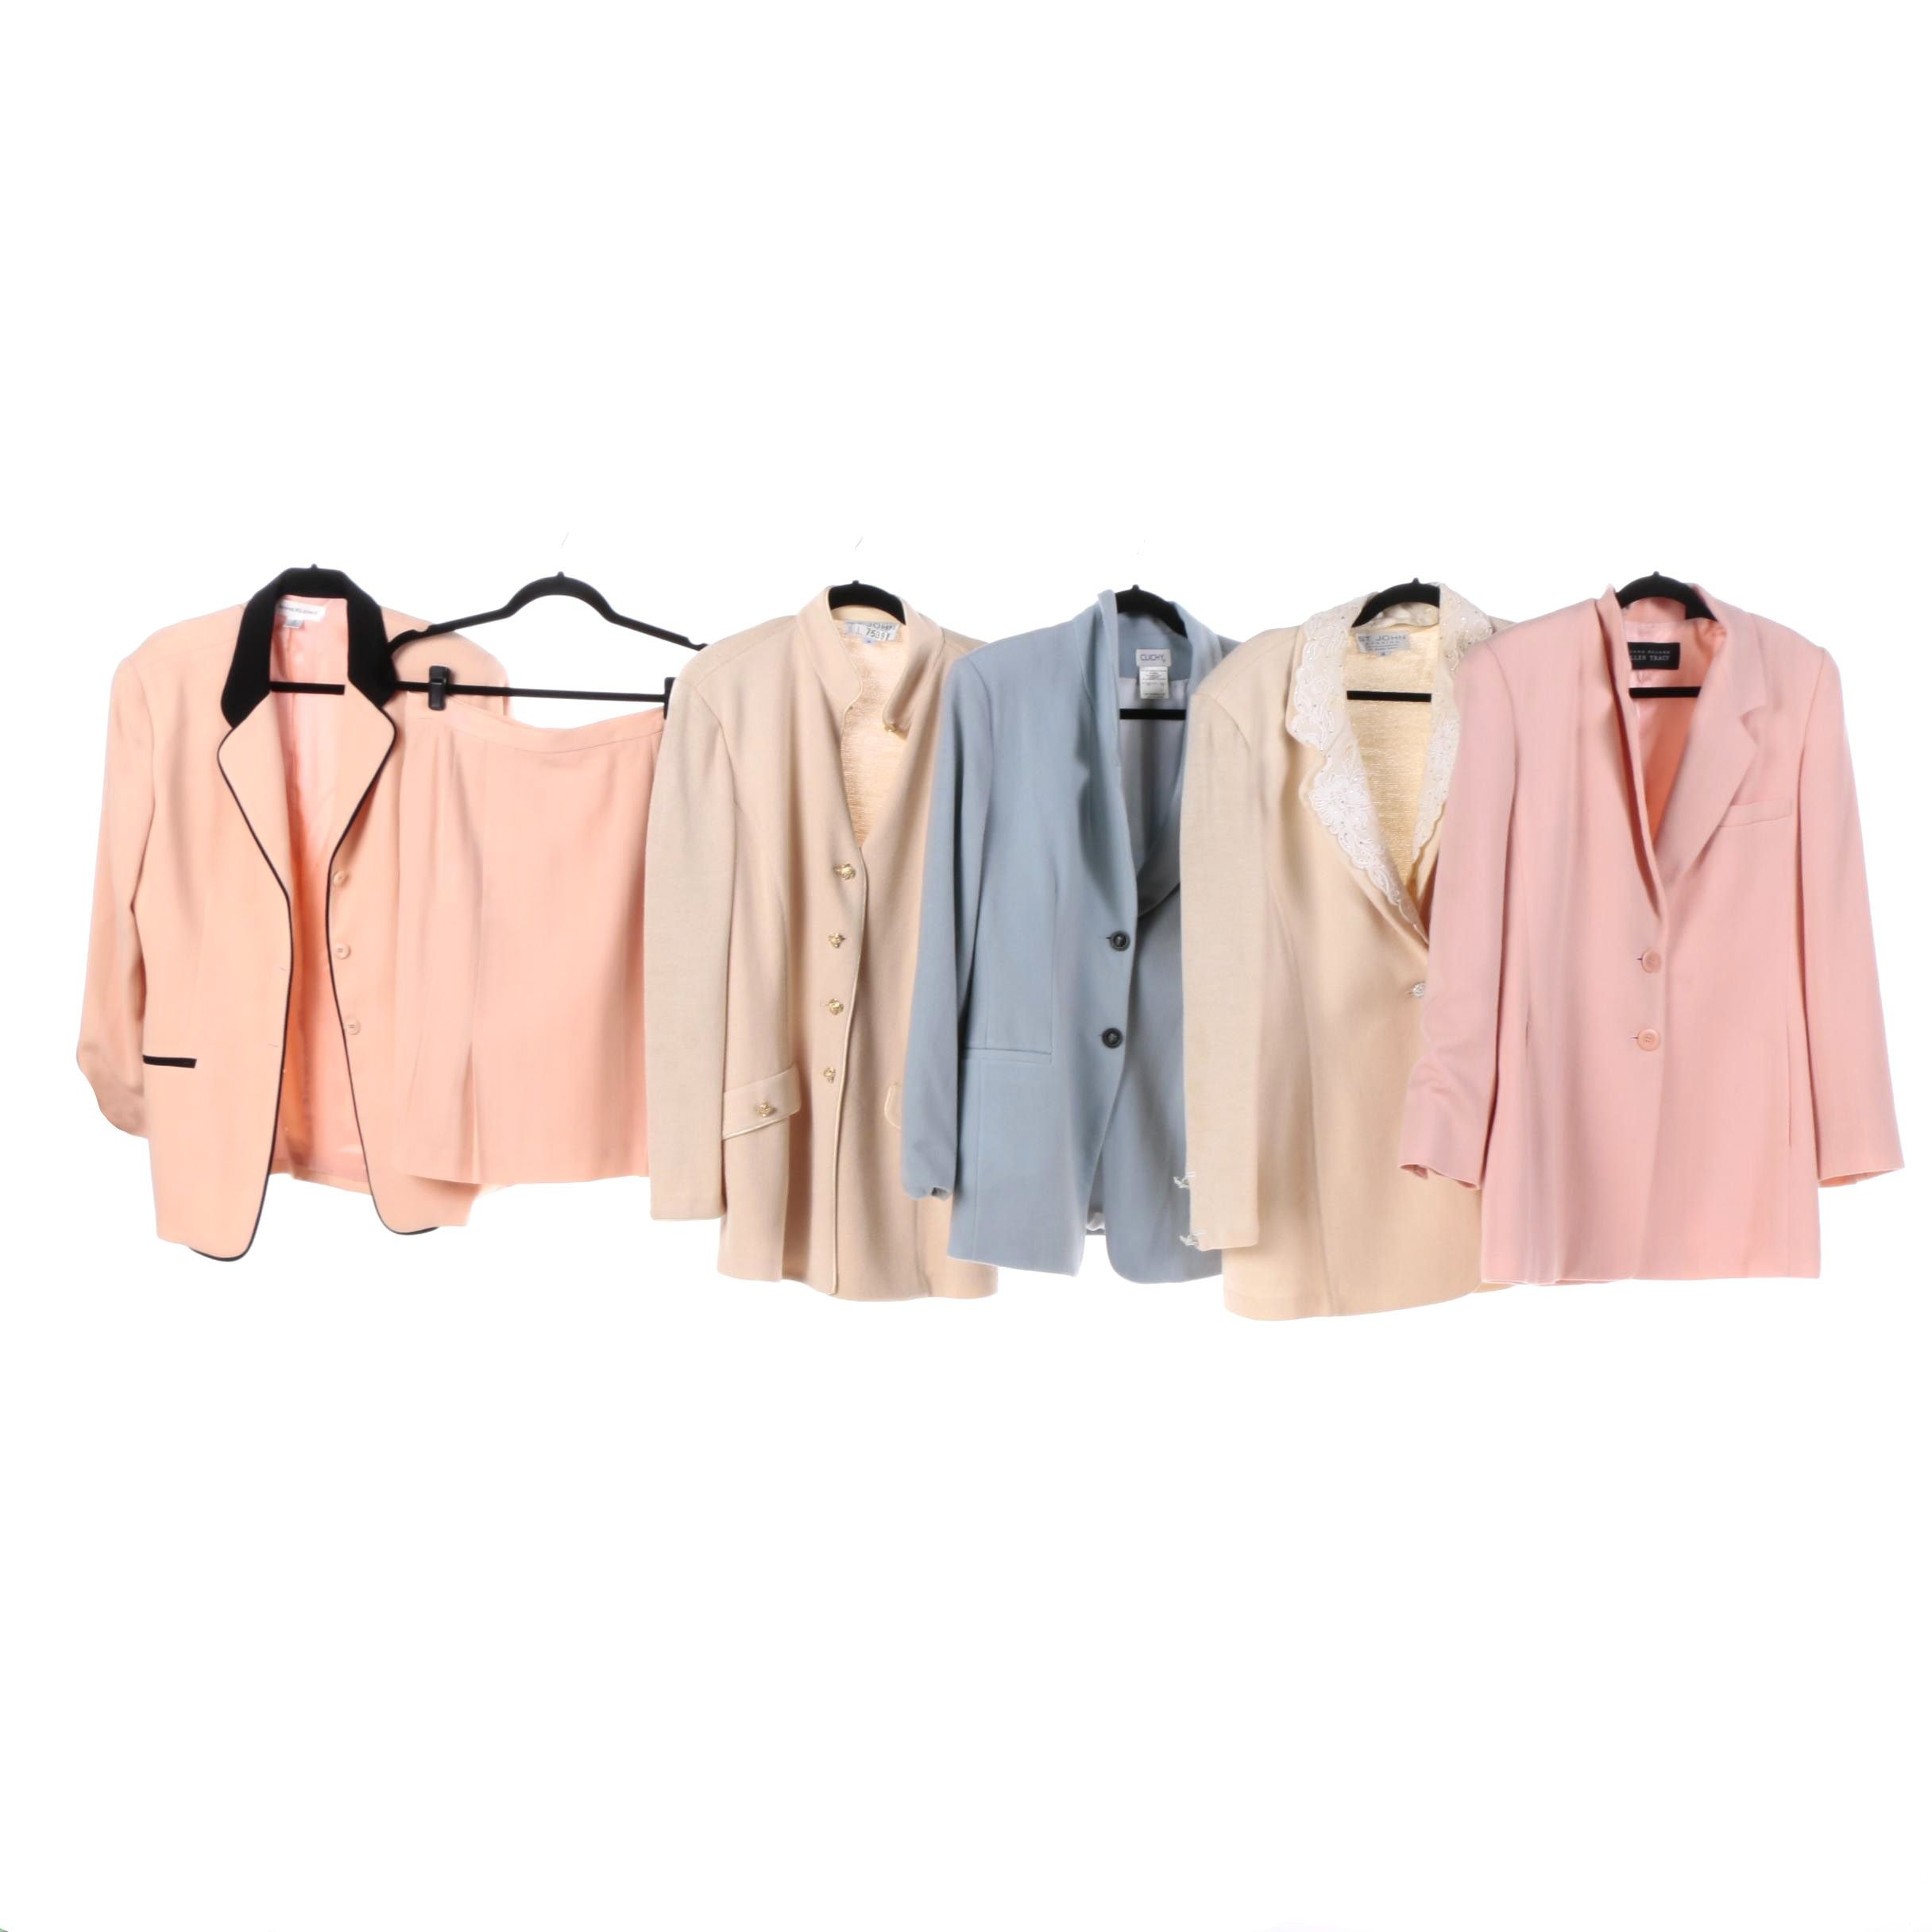 Skirt Suit and Jackets Featuring St. John Knits